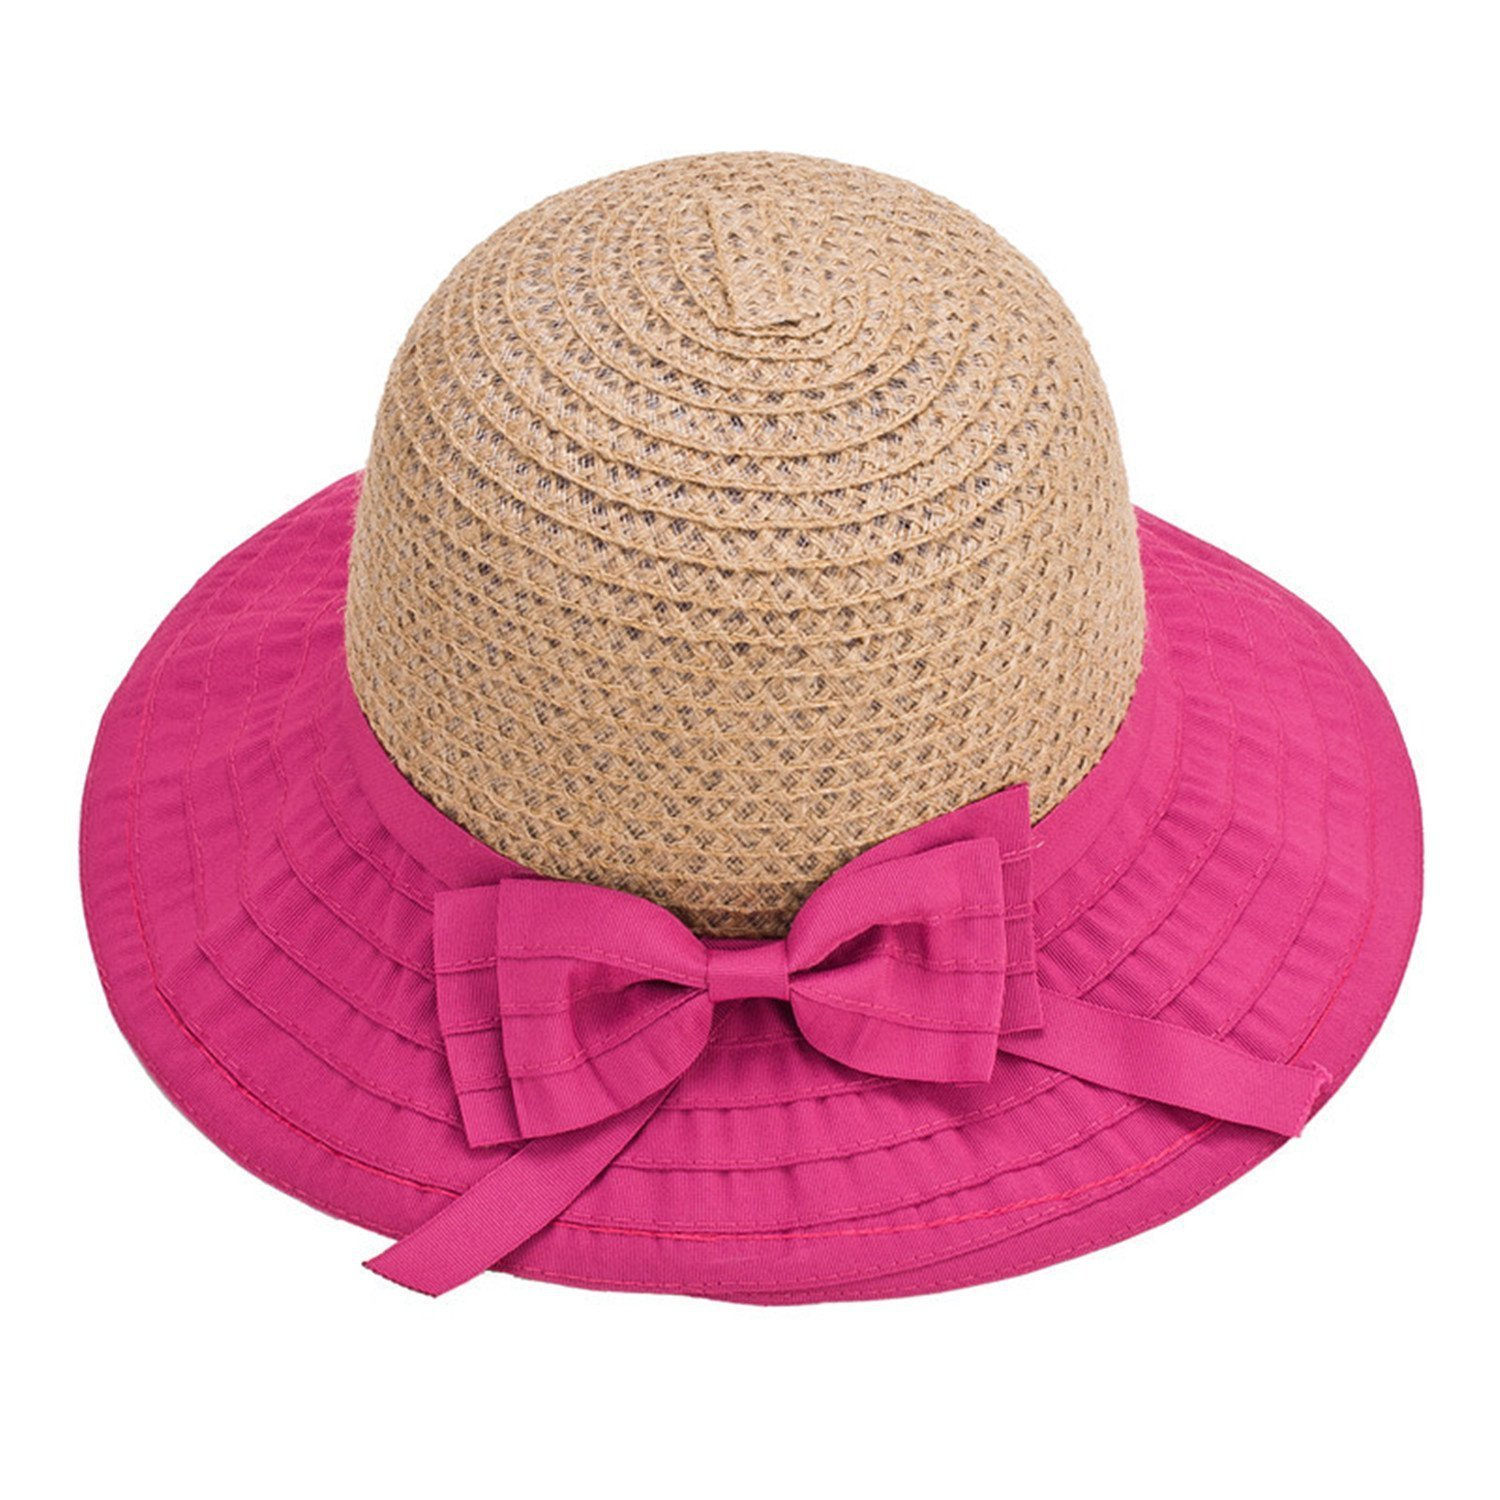 44d00680aea Amazon.com  Mainstream Women Sun Hats Classic Foldable Patchwork Wide Brim  Straw Hat Nice Bow Summer Boater Hat Lady Hats Beach  Cap